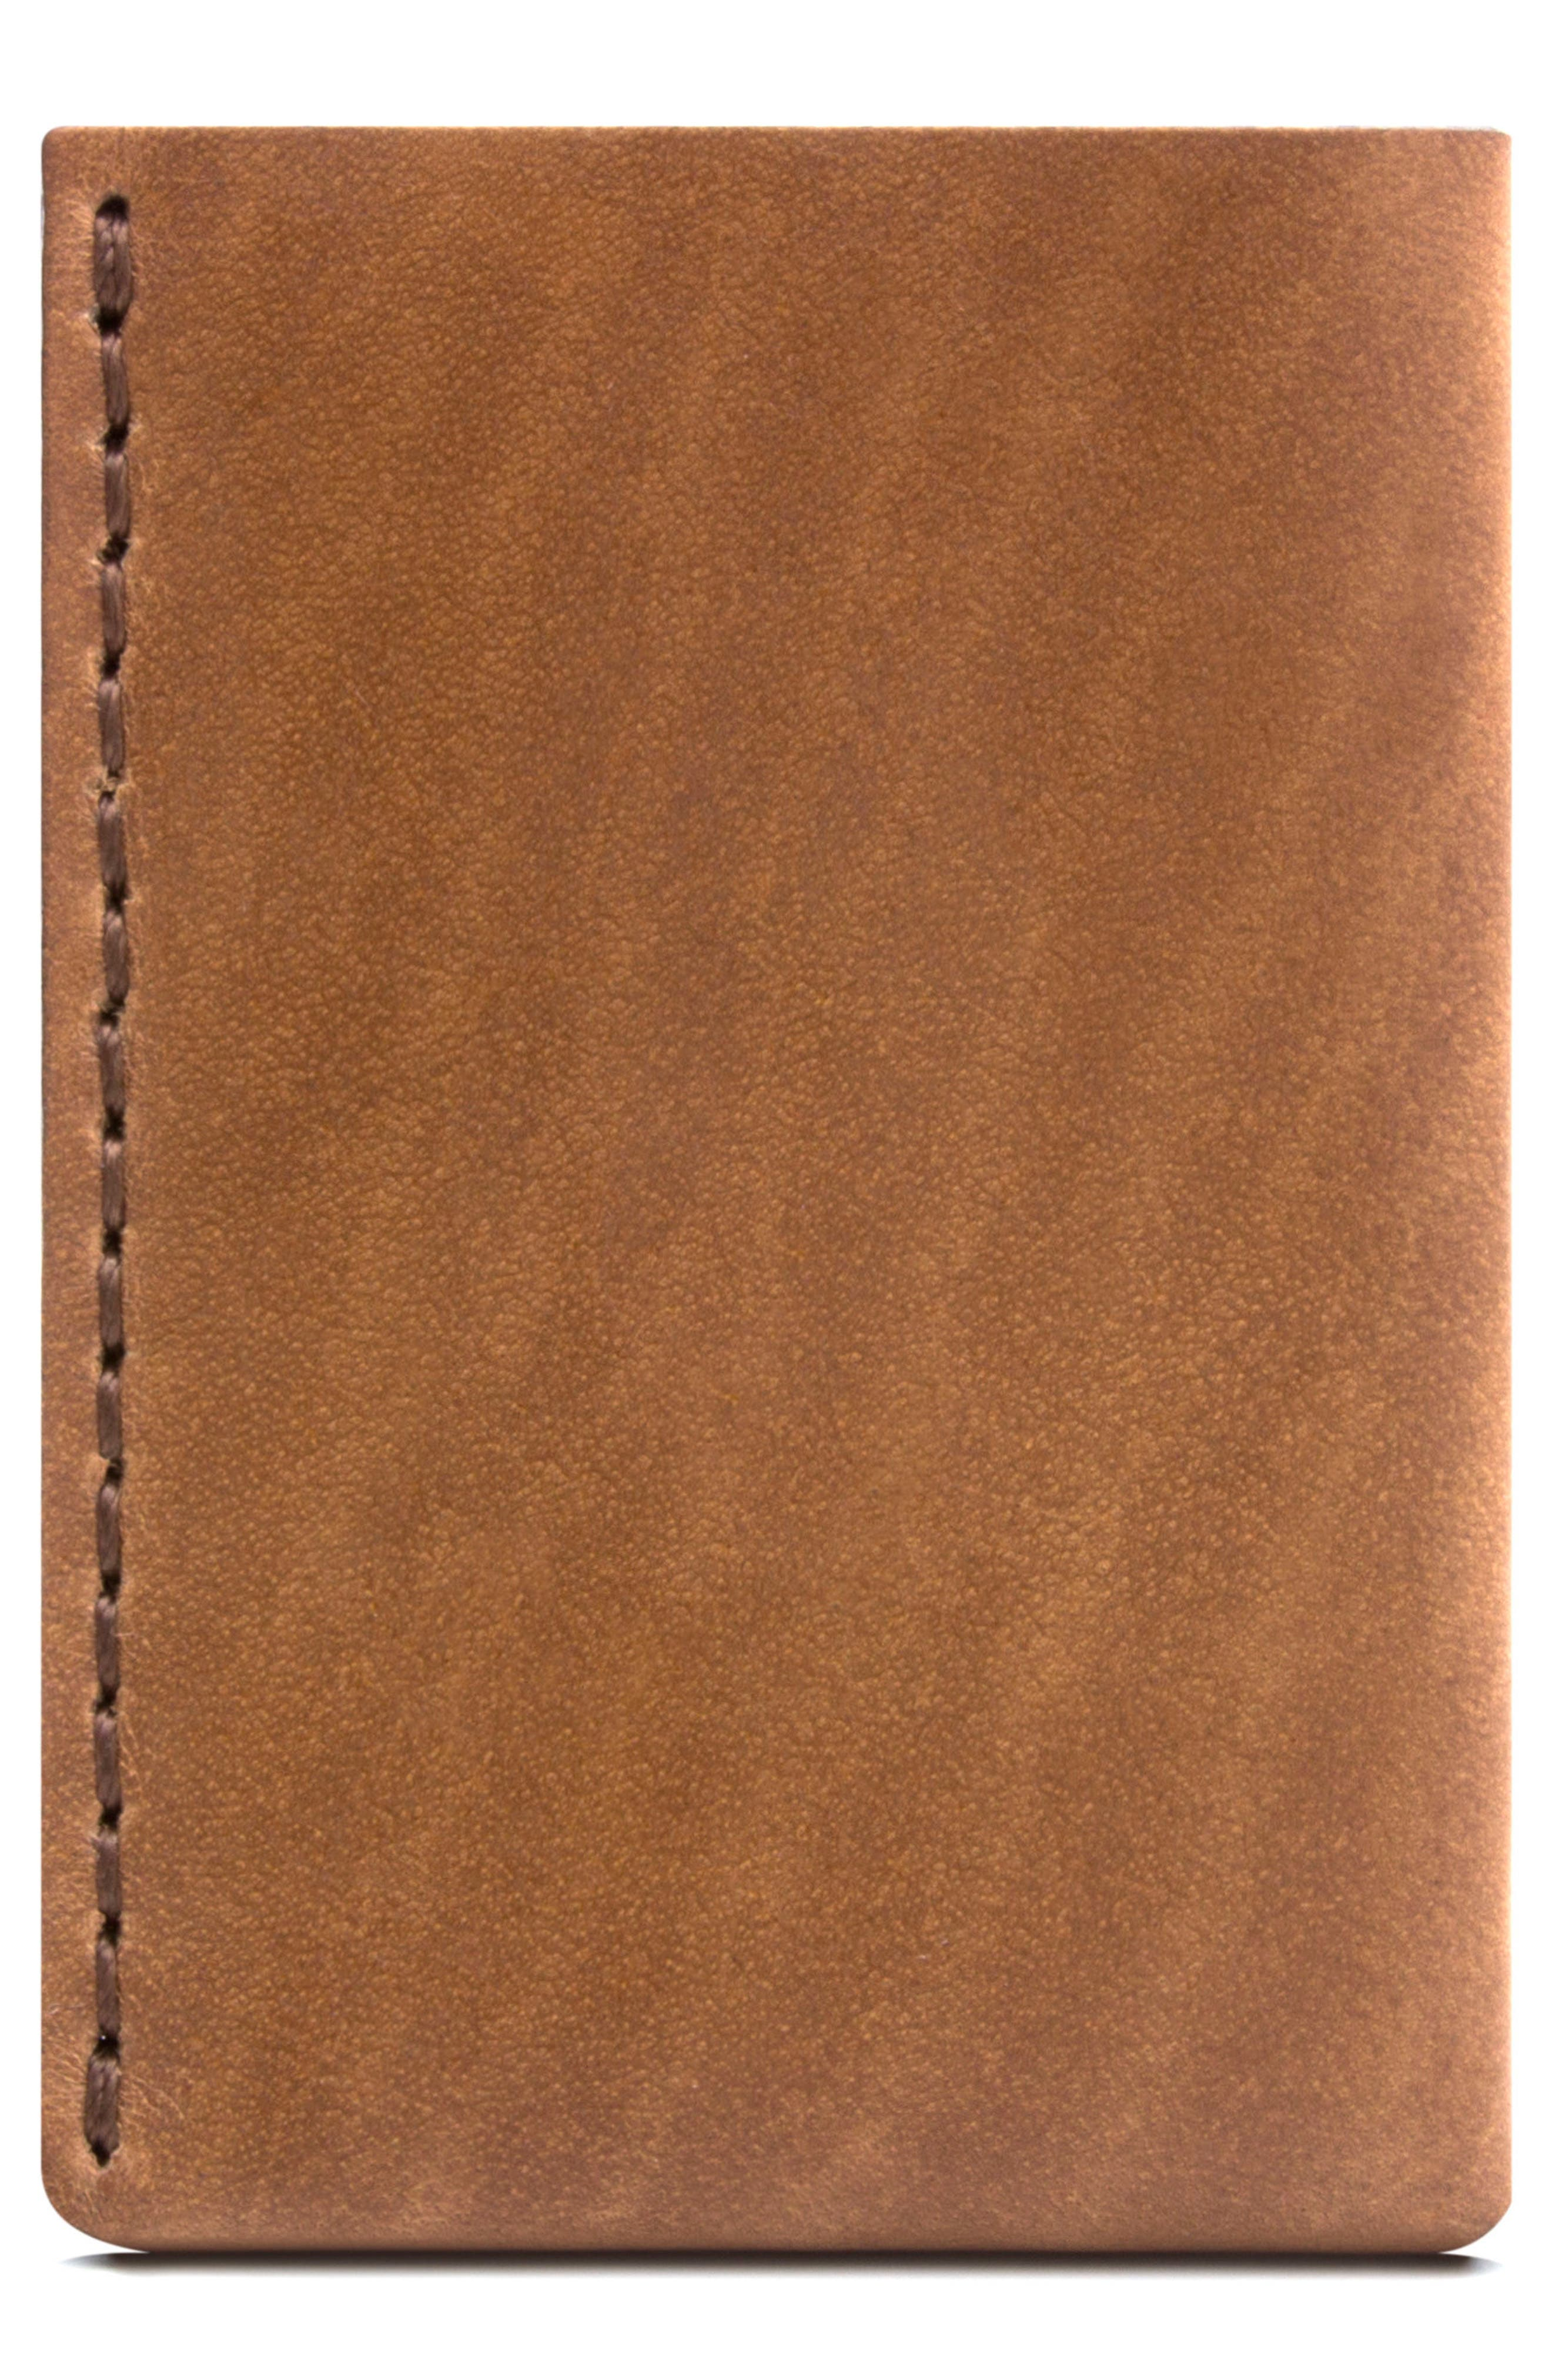 No. 7 Leather Wallet,                         Main,                         color, Whiskey